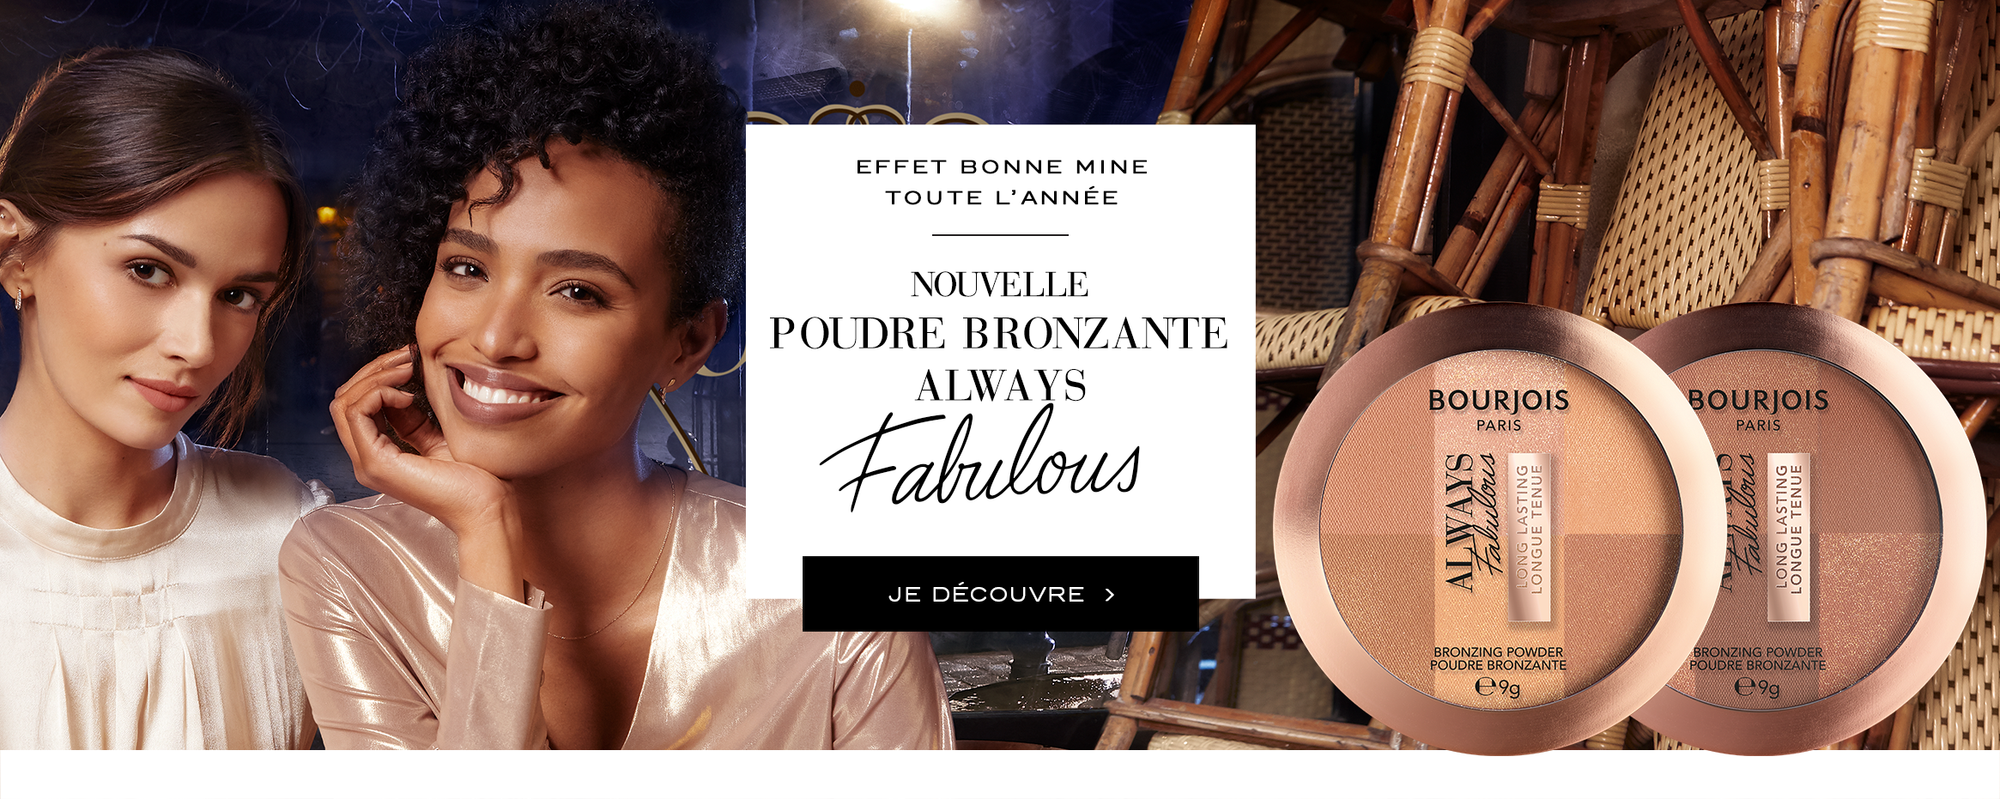 Maquillage bourjois poudre Always fabulous